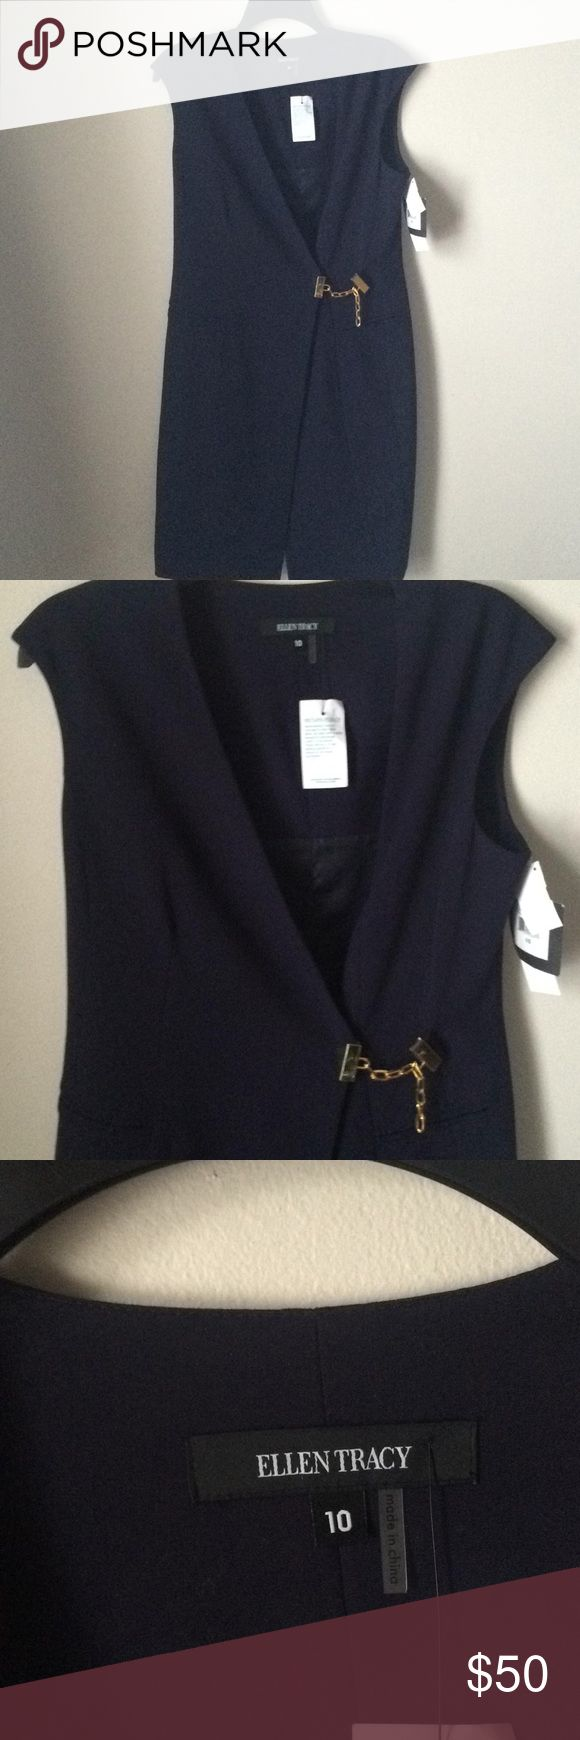 """💐 Ellen Tracy Blue Dress Navy Blue V Neck Dress 👠 Hidden inner zipper & one snap button Described as """"Indigo Blue"""" Gold Tone Link makes this color Pop 💙 Fully Lined Shell Polyester Rayon Spandex Blend Lining 100% Polyester Ellen Tracy Dresses Midi"""